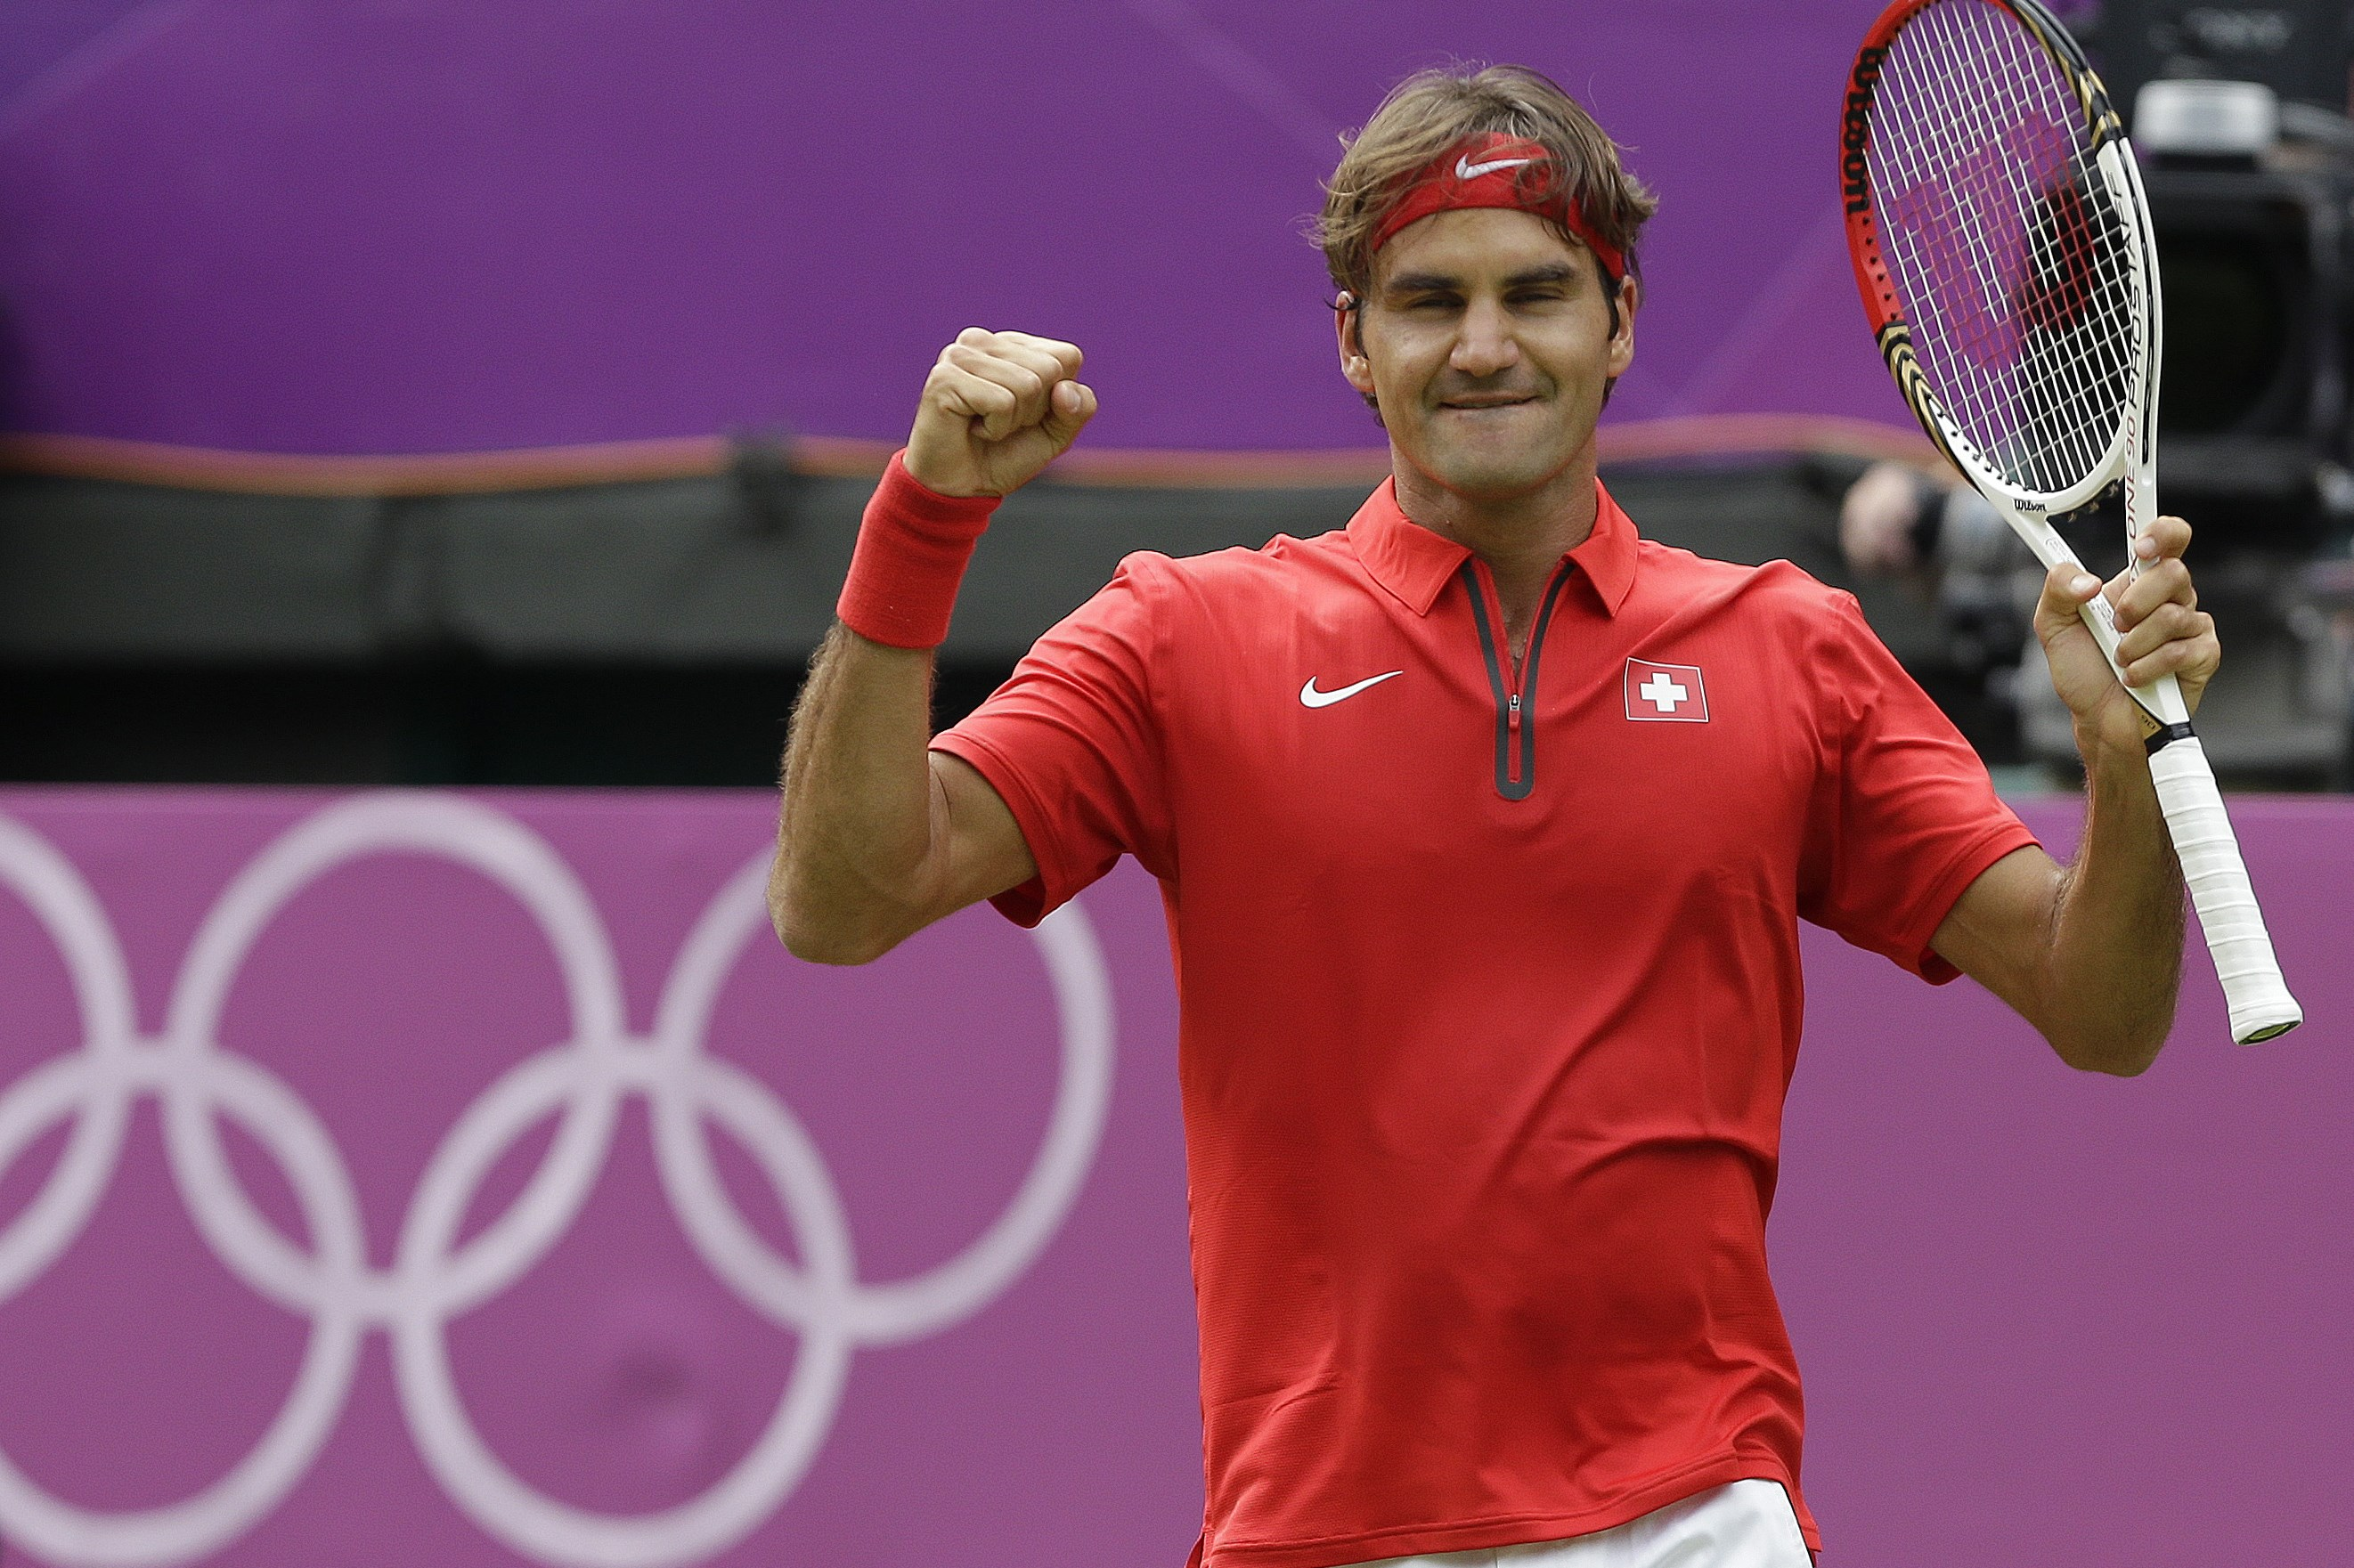 "FILE - In this July 28, 2012, file photo, Roger Federer of Switzerland celebrates his 6-3, 5-7, 6-3 victory over Alejandro Falla of Colombia at the All England Lawn Tennis Club in Wimbledon, London at the 2012 Summer Olympics. The ""Big 4"" of men's tennis"